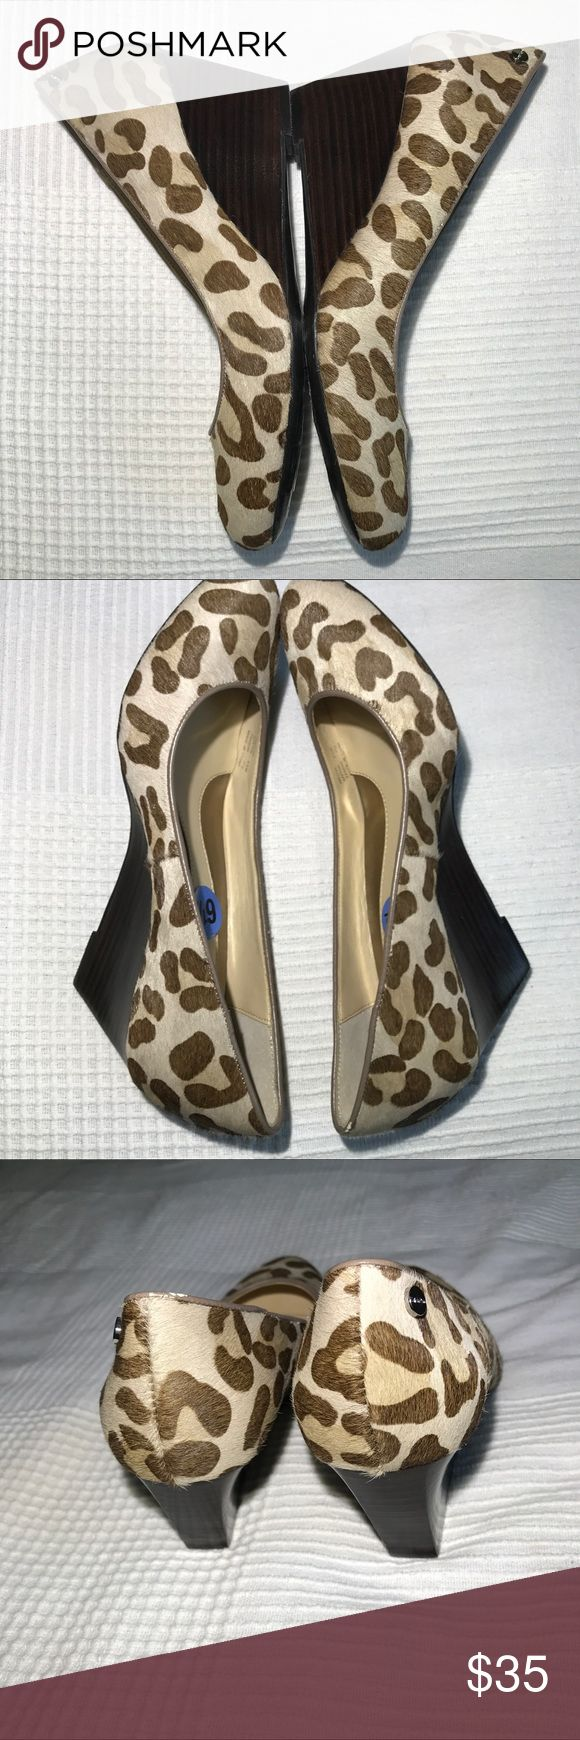 NWT Calvin Klein Leopard print wedges size 6 1/2 NWT Adorable abs on trend leopard print Calvin Klein wedges. Cow hair material. Please bundle to save or send me an offer. Thanks for stopping by Calvin Klein Shoes Wedges